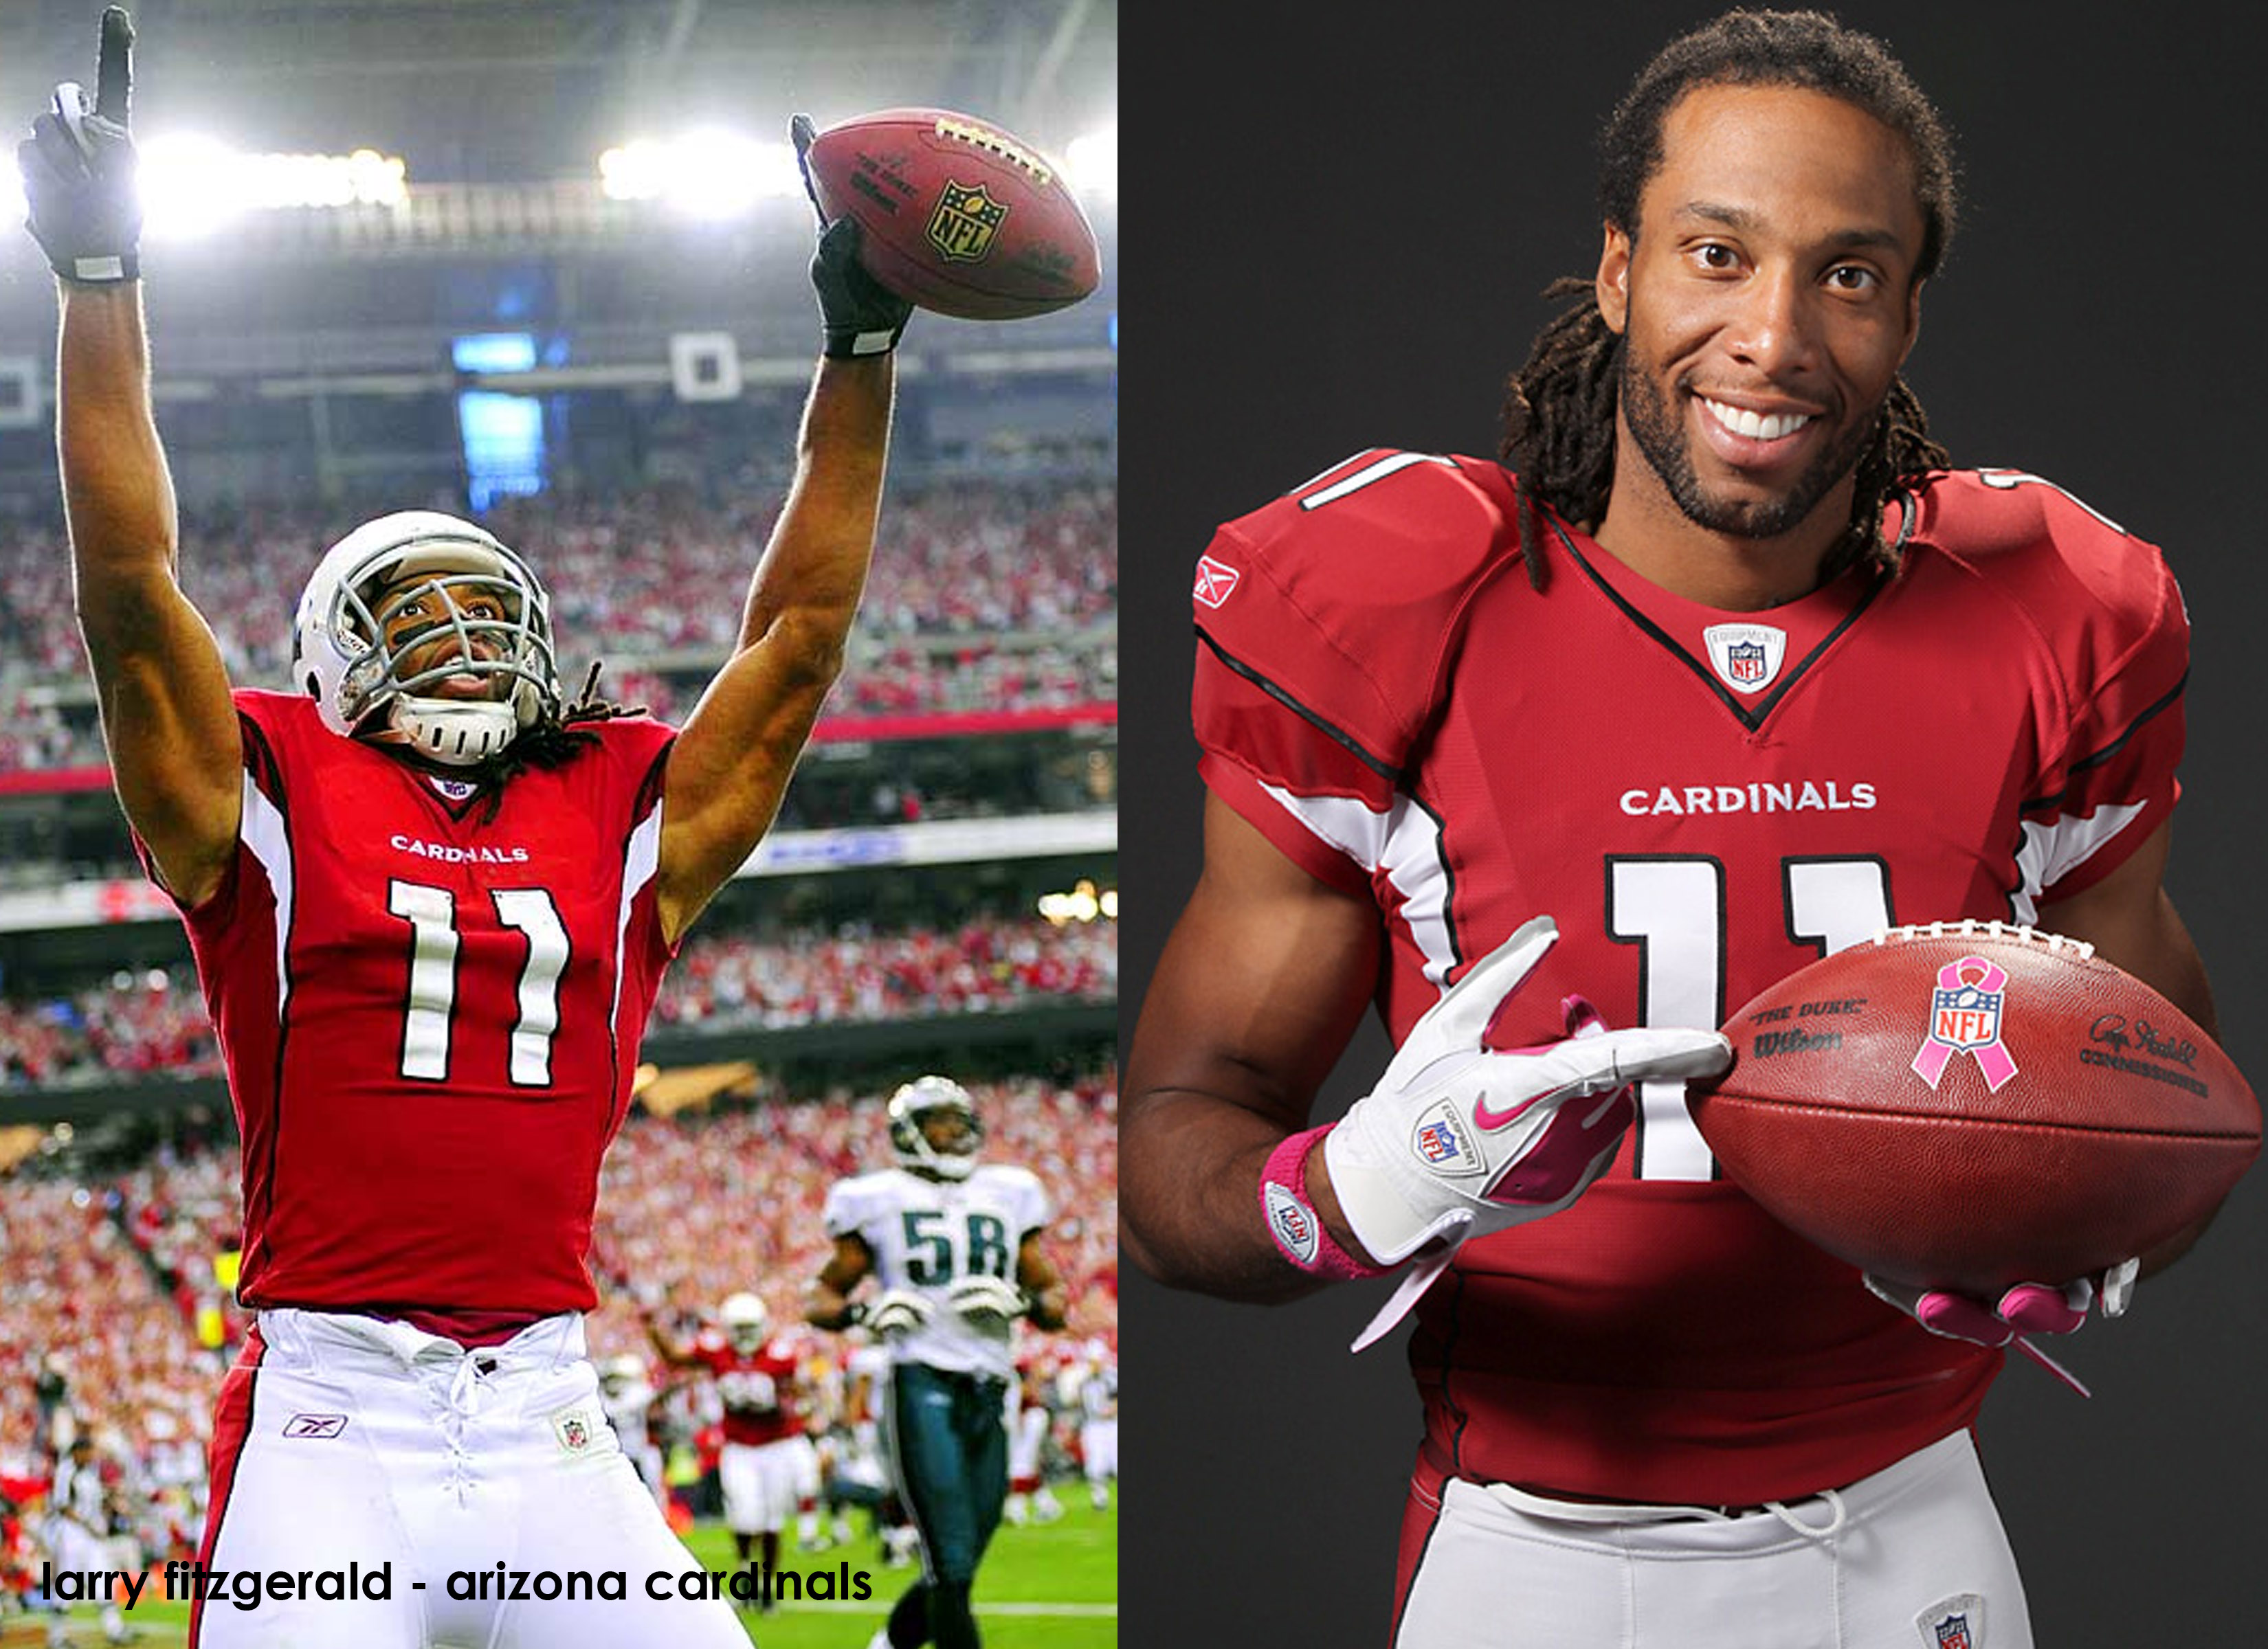 sale retailer ce62c 79695 larry fitzgerald | The M.A.D. Girls, Inc